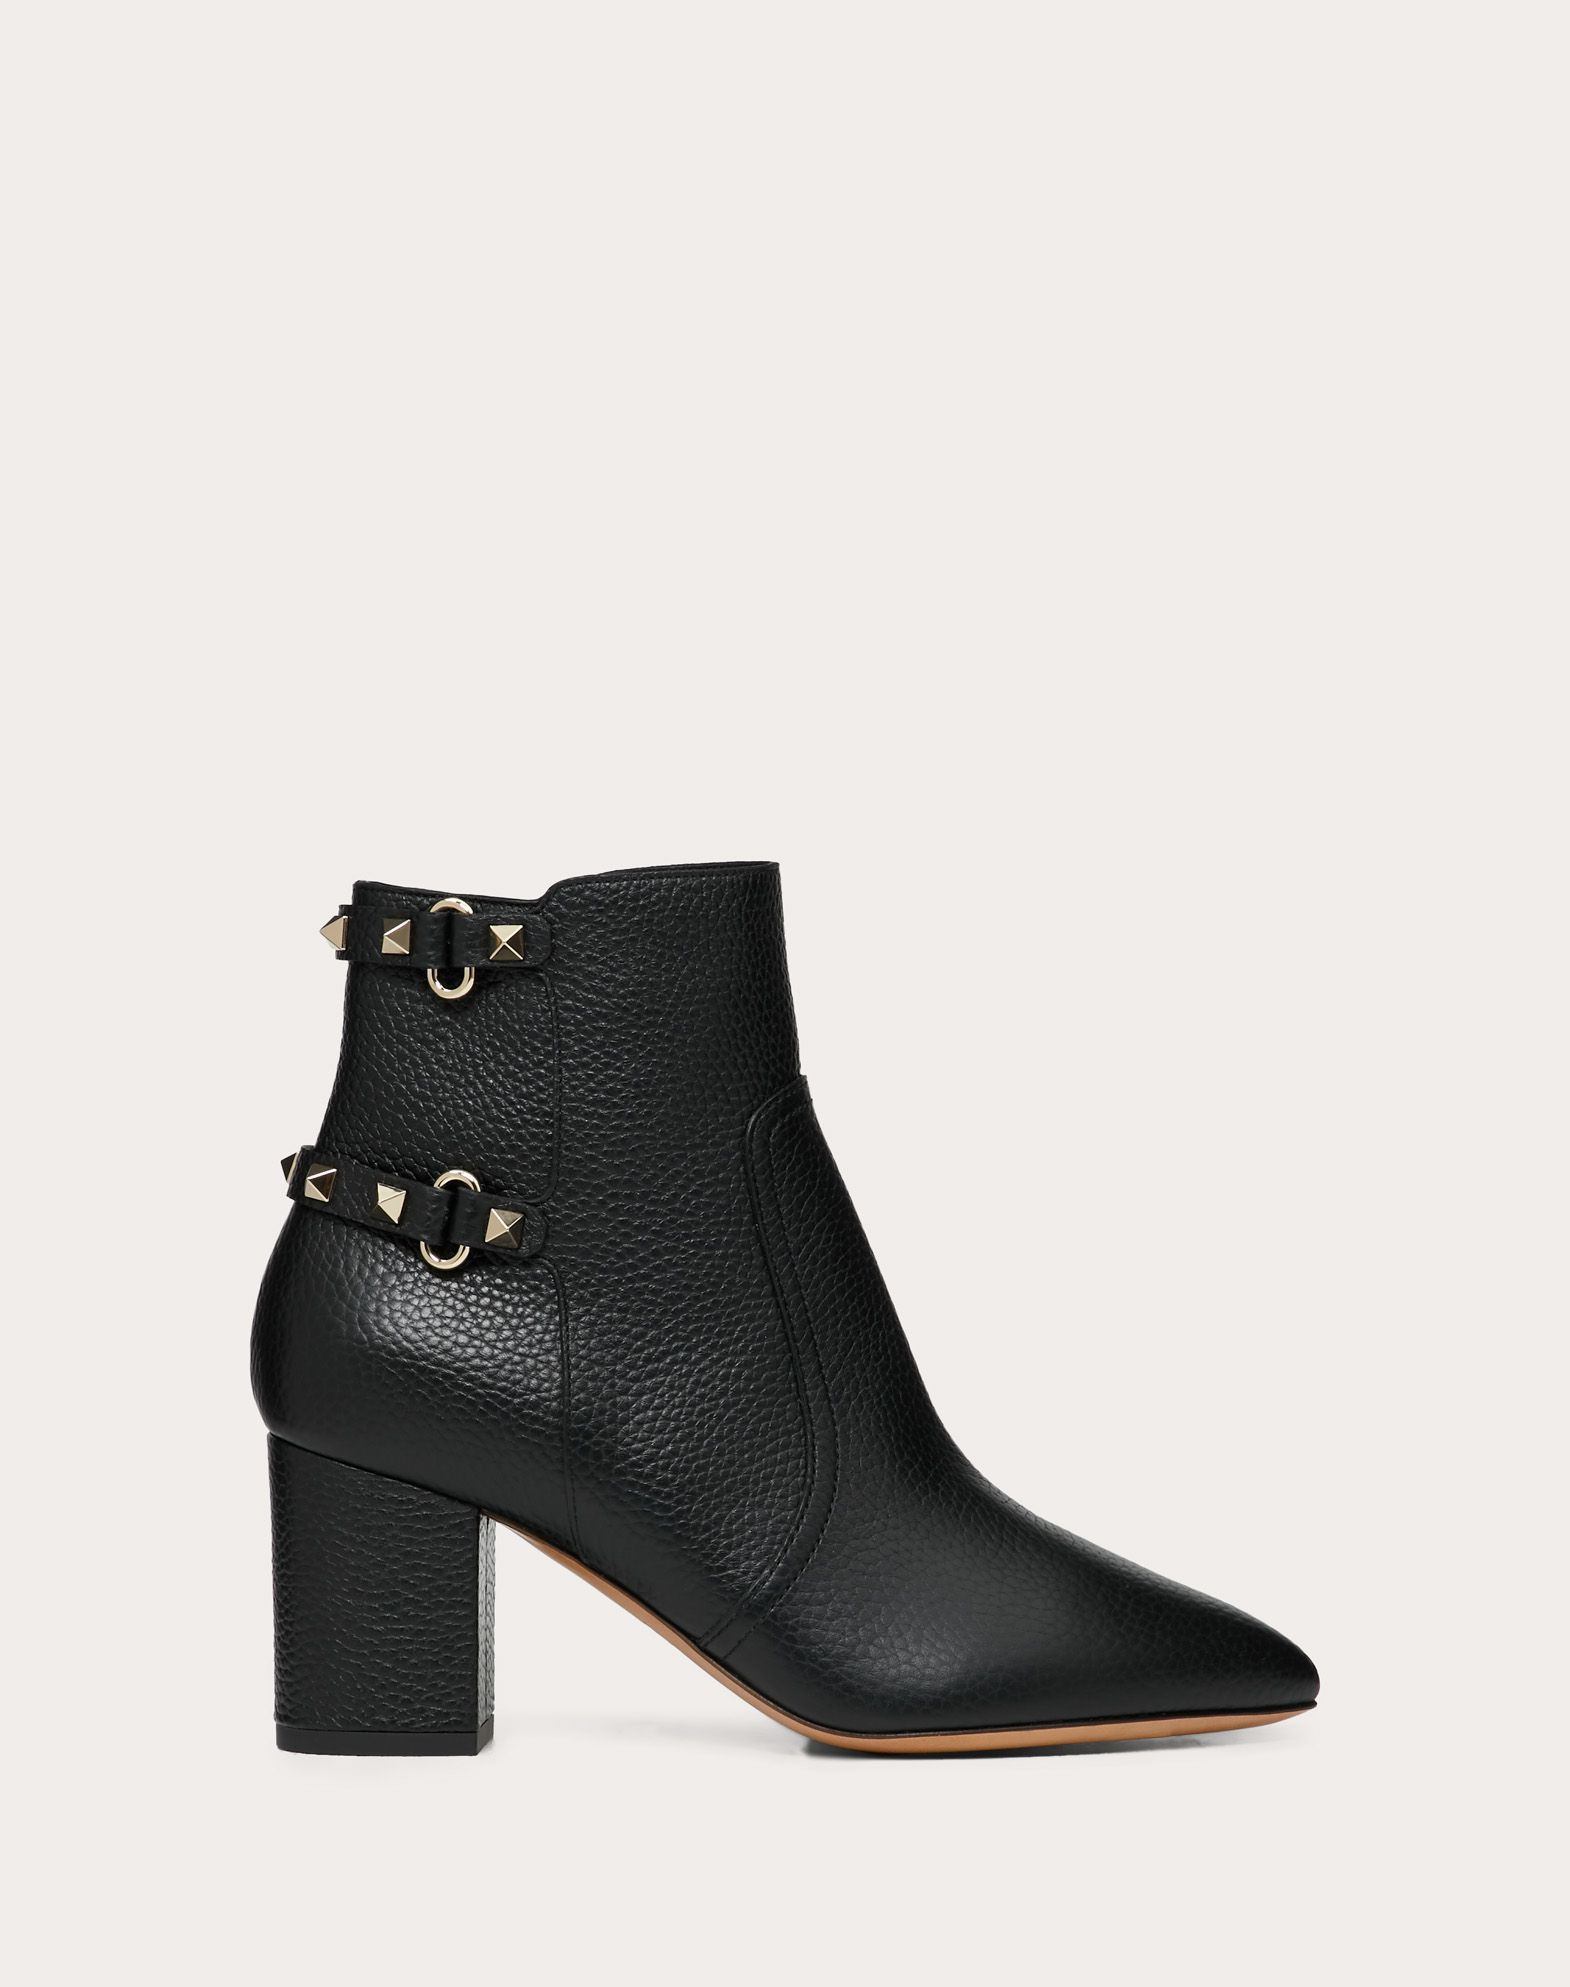 Rockstud Grainy Calfskin Leather Ankle Boot 70 mm